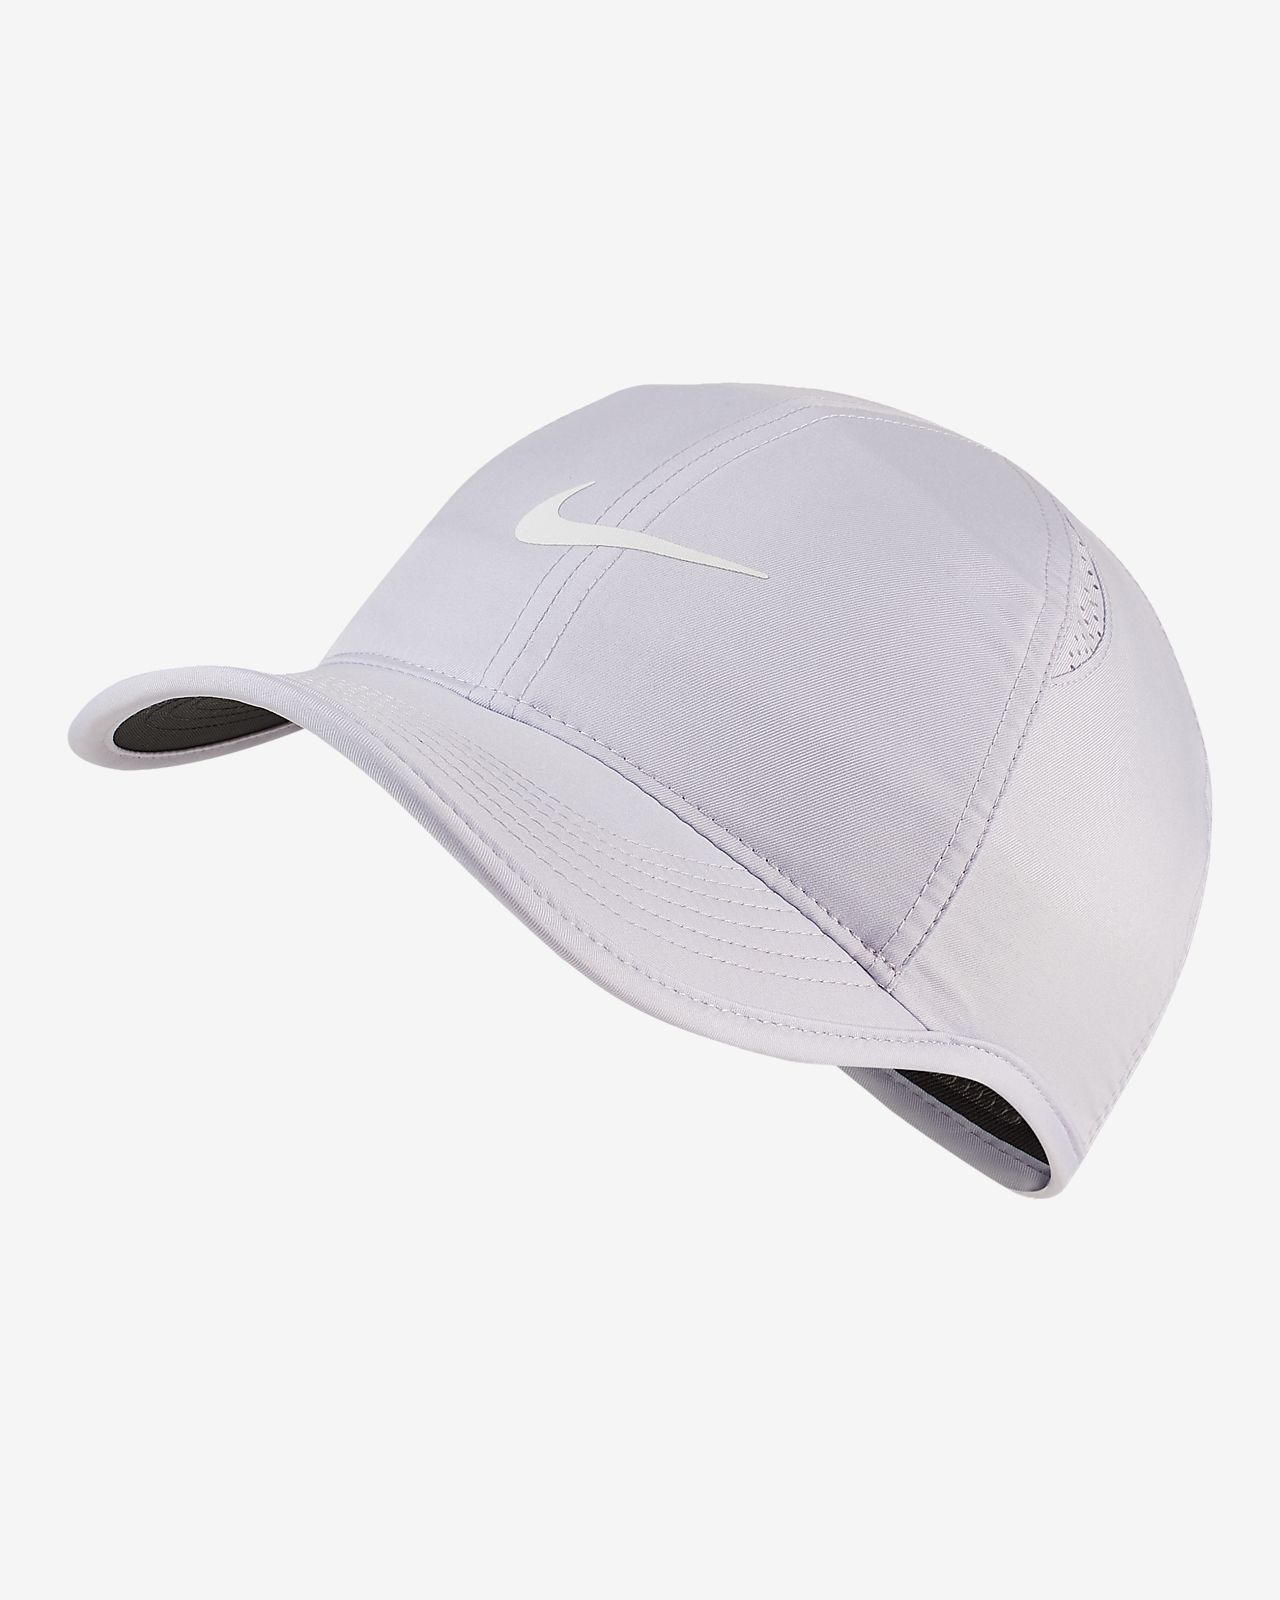 657008f1 NikeCourt AeroBill Featherlight Women's Tennis Cap. Nike.com